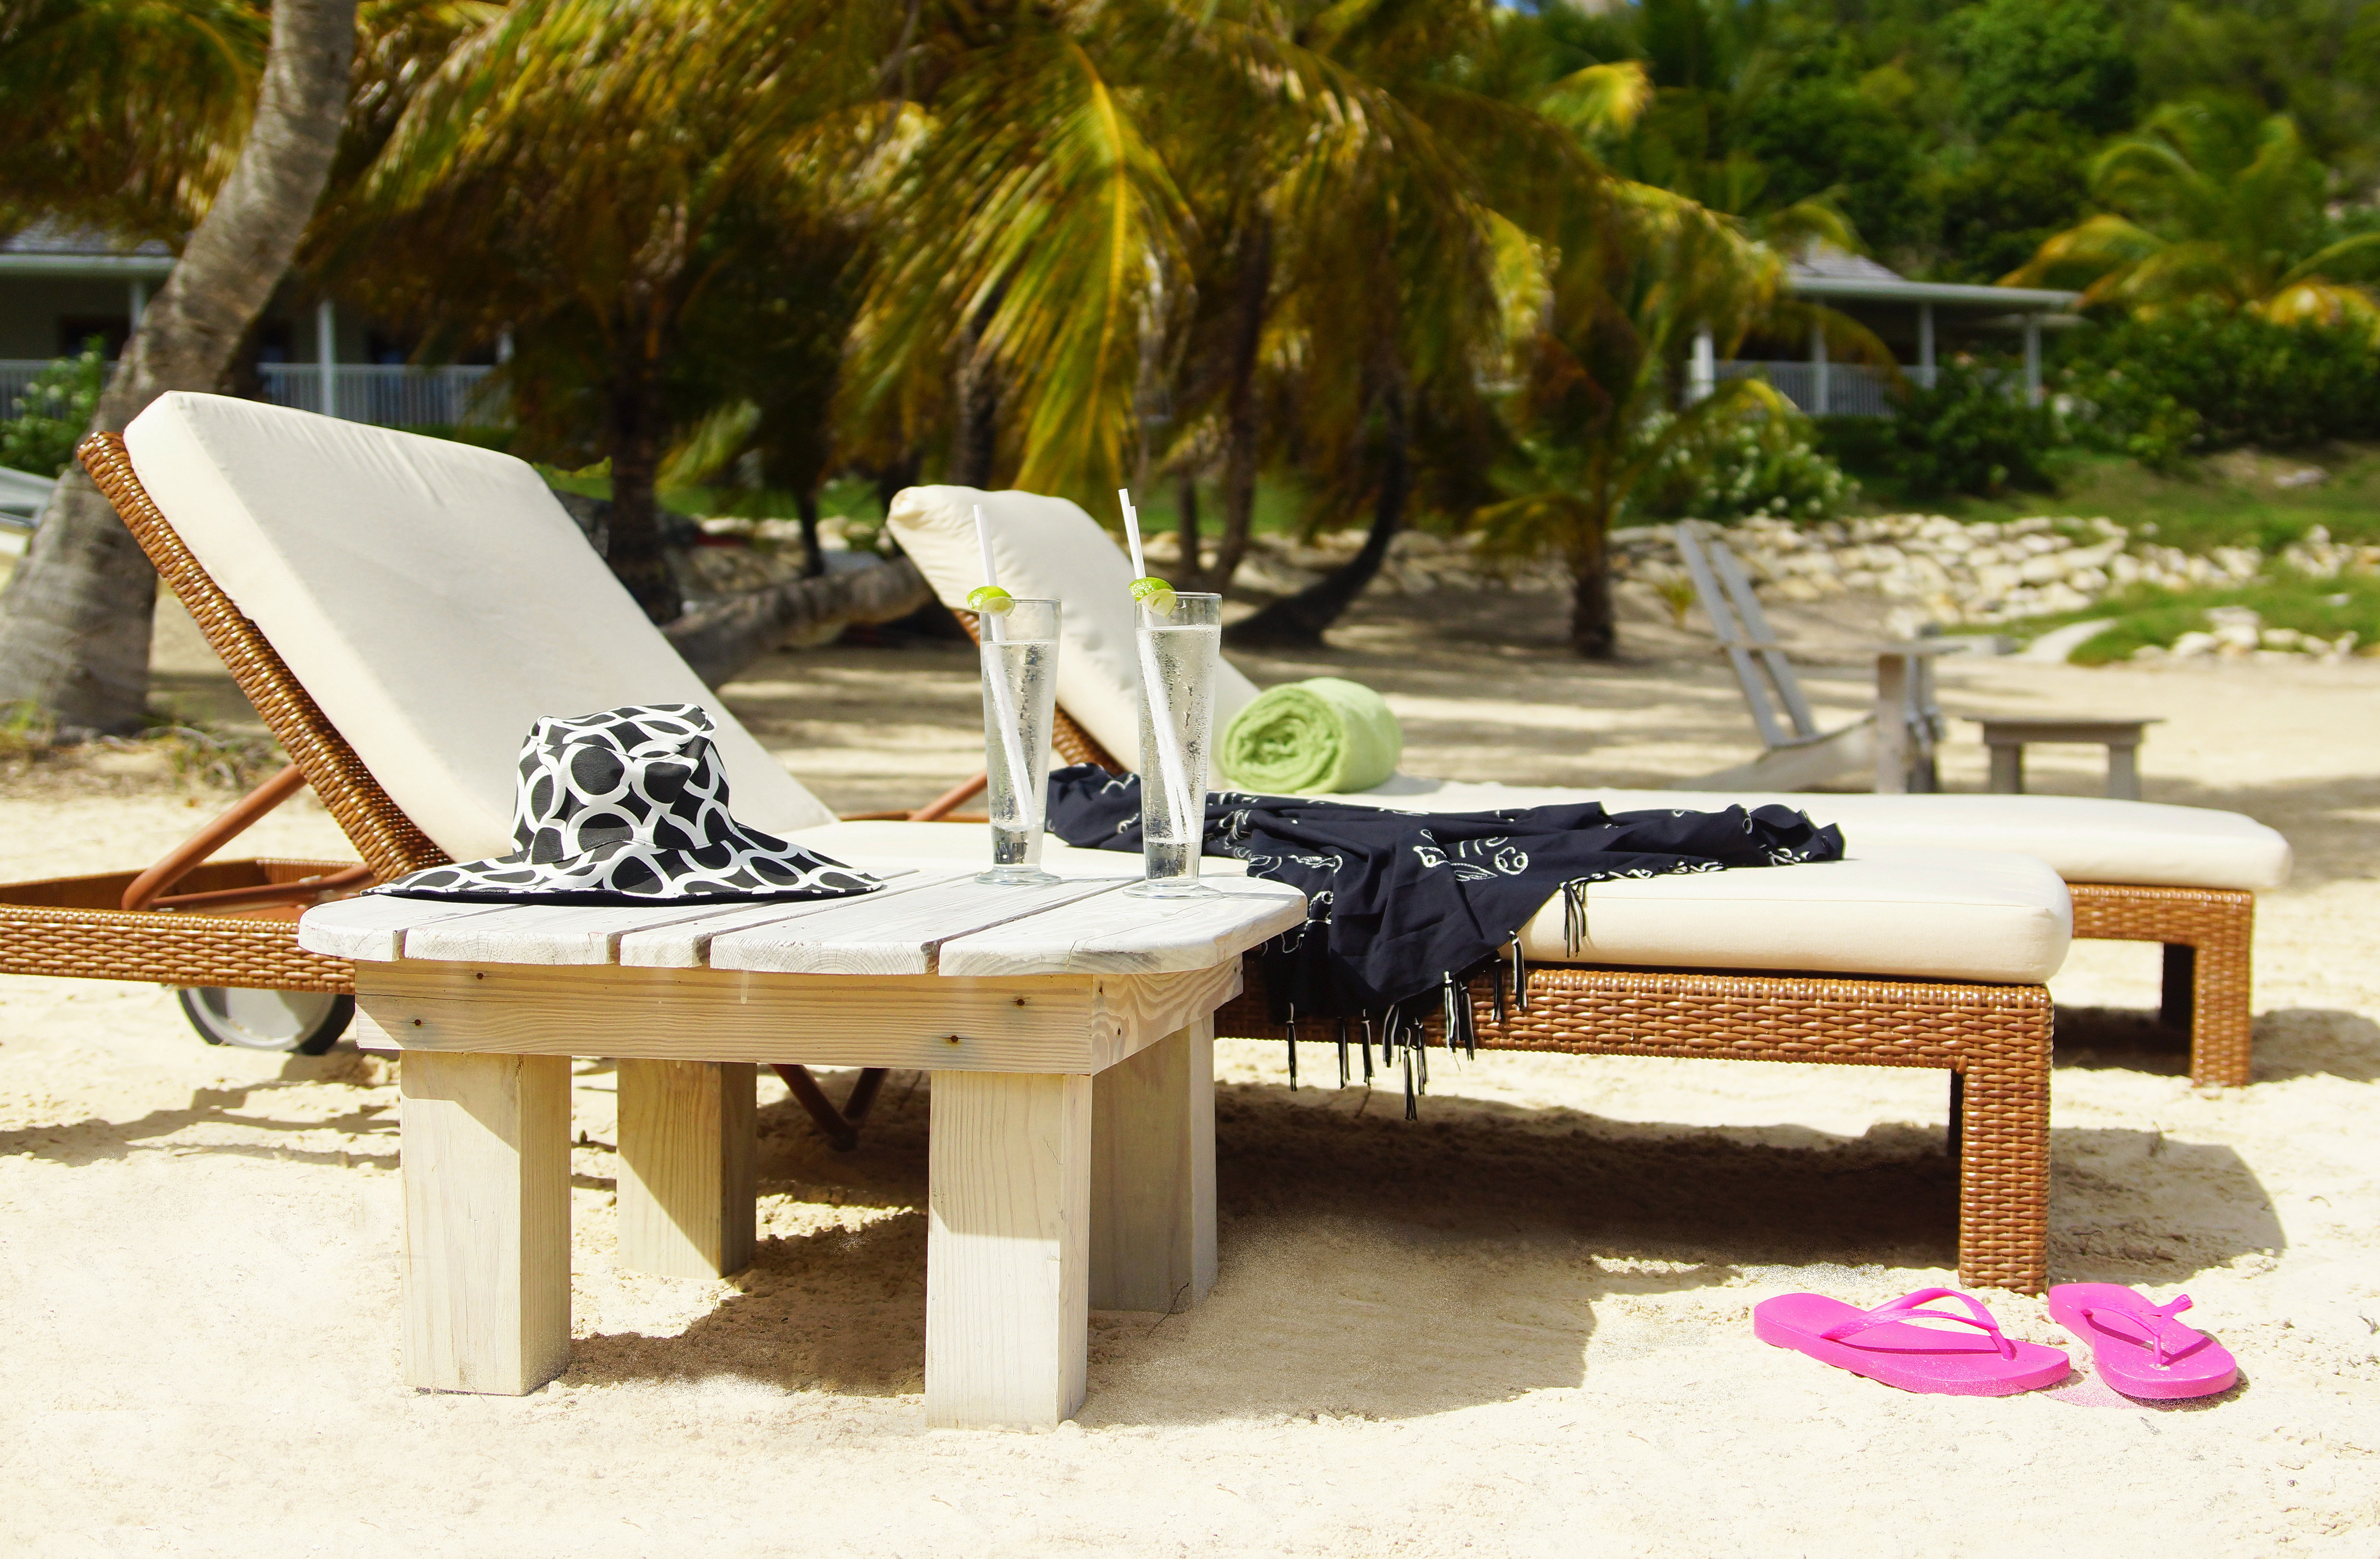 Beach Beachfront Play Resort tree ground chair human positions wooden Picnic park sitting bench outdoor furniture vehicle shade